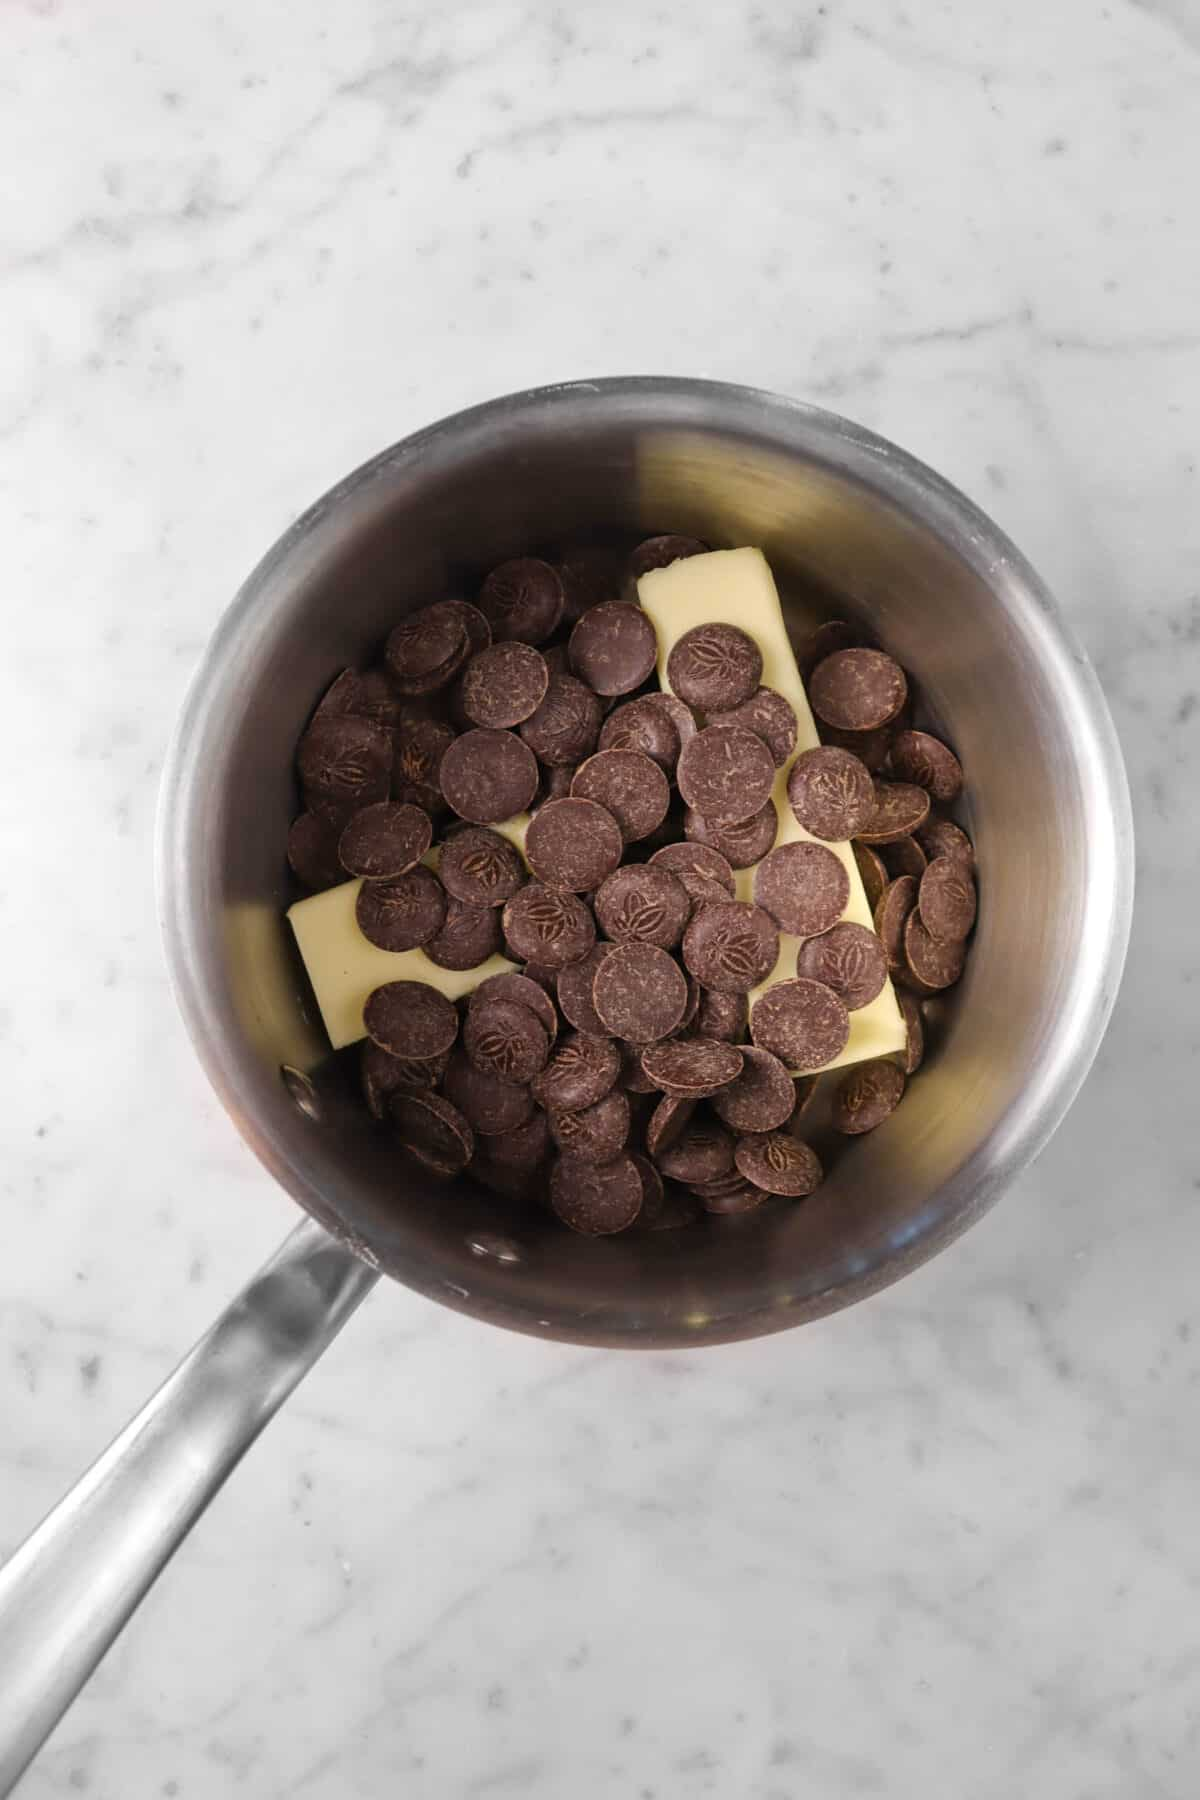 butter and chocolate chips in a small pot